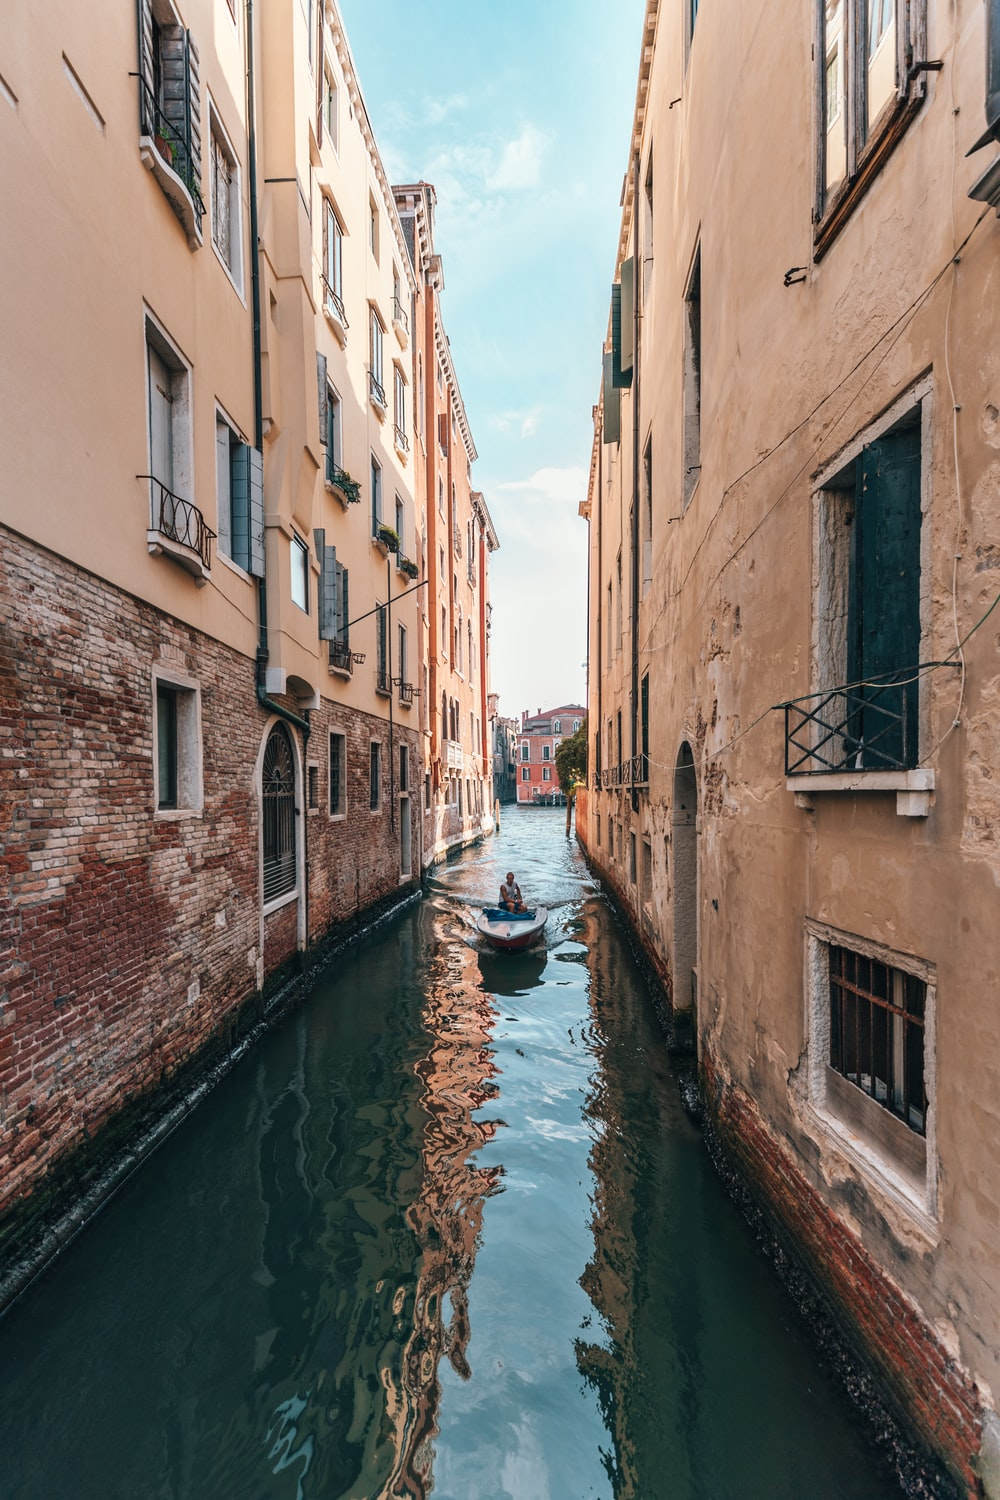 boat on Grand Canal, Venice during daytime